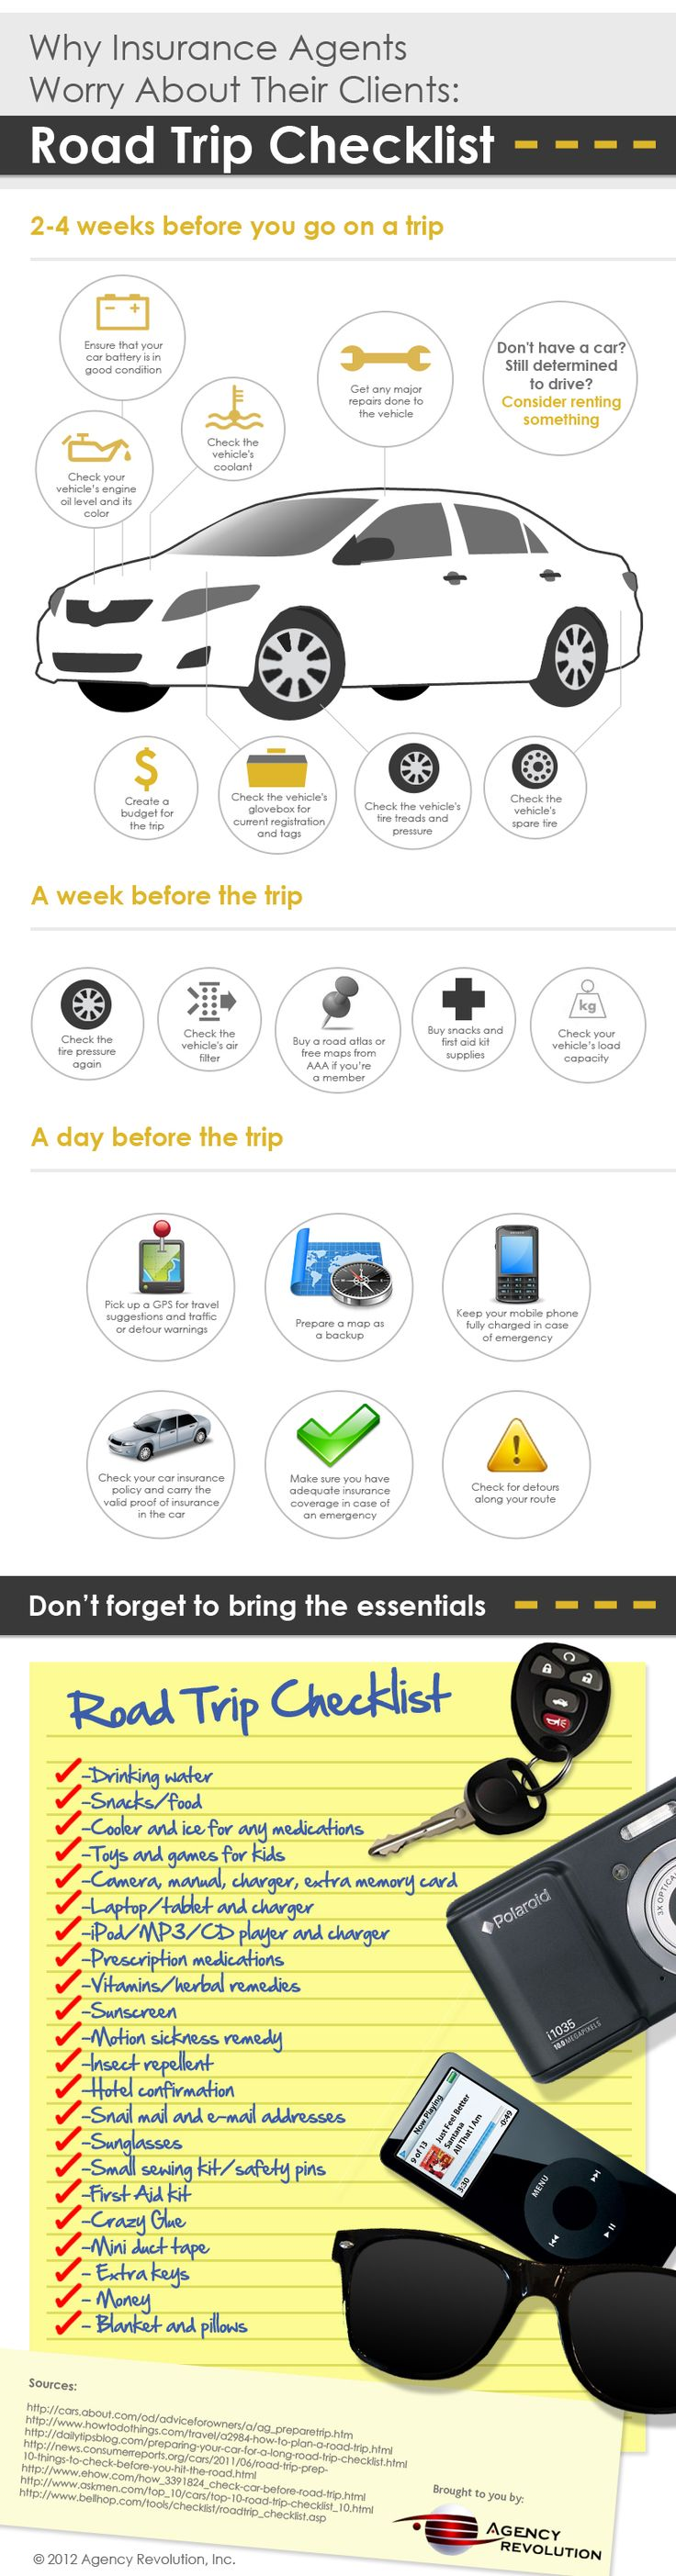 Will you be taking a road trip this summer?  If so, make sure to review this Road Trip Checklist.